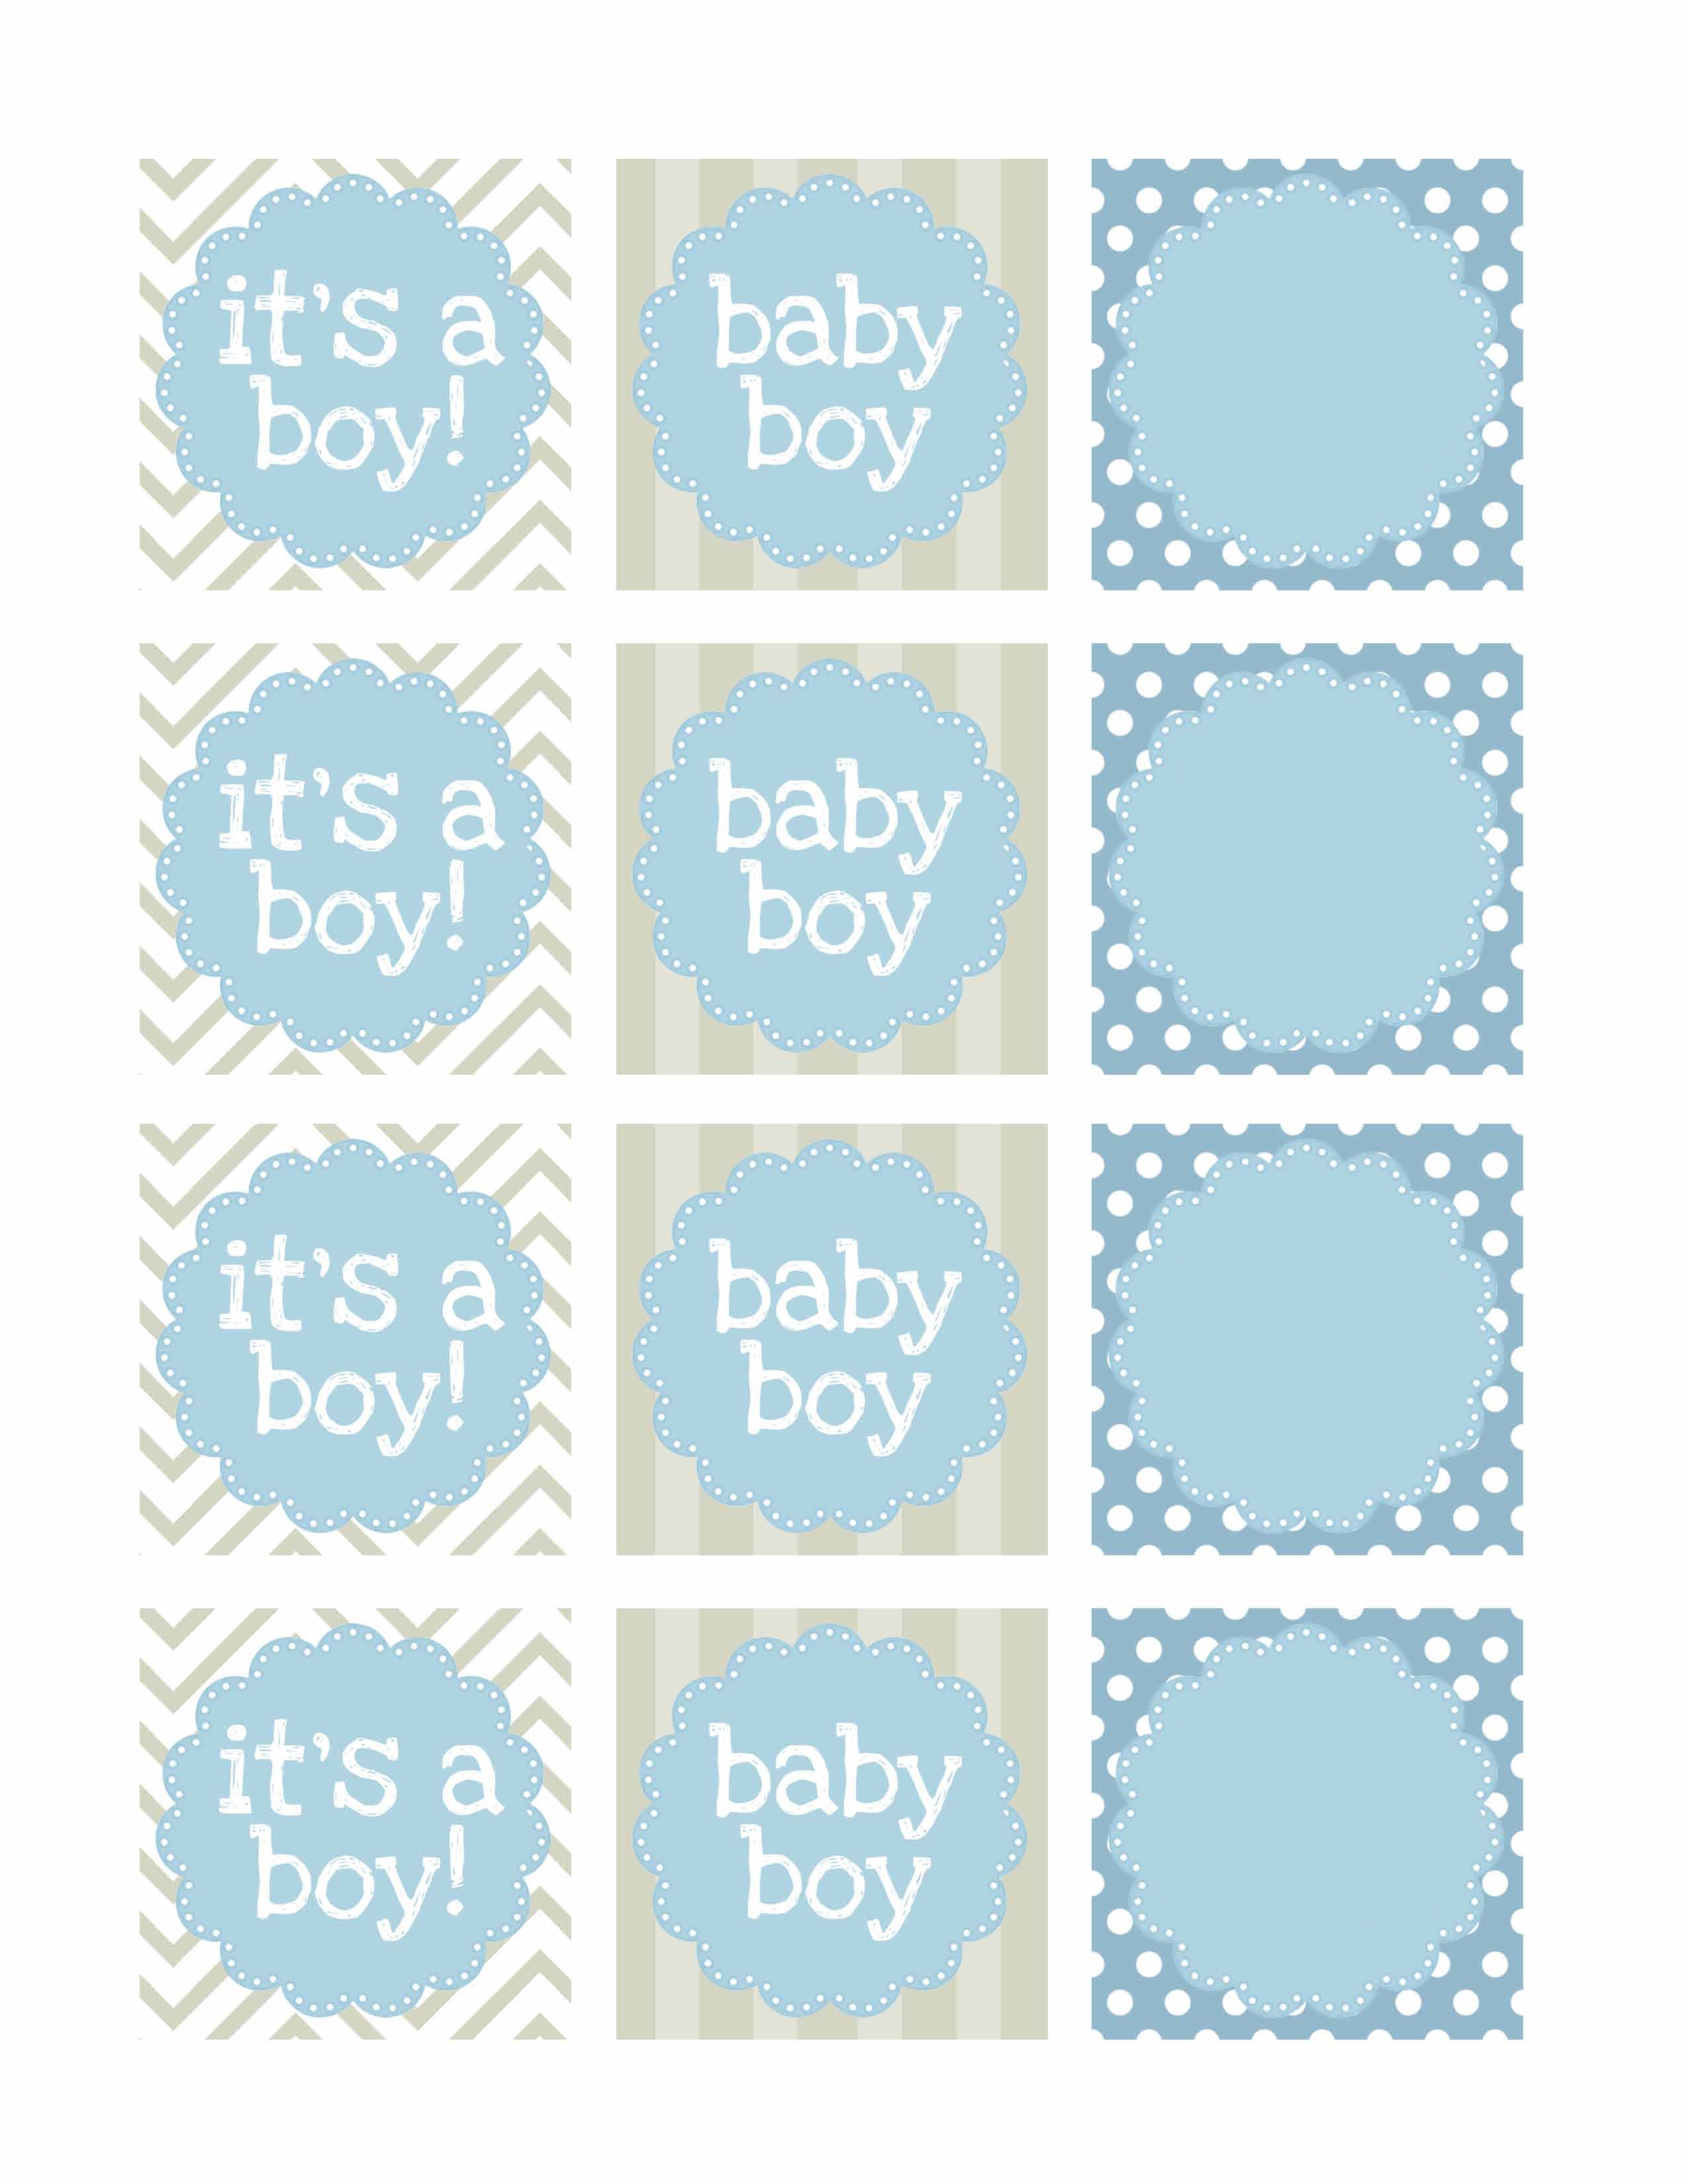 7 best images of free printable baby shower name tags free printable baby shower gift tags for Printable baby gift tags